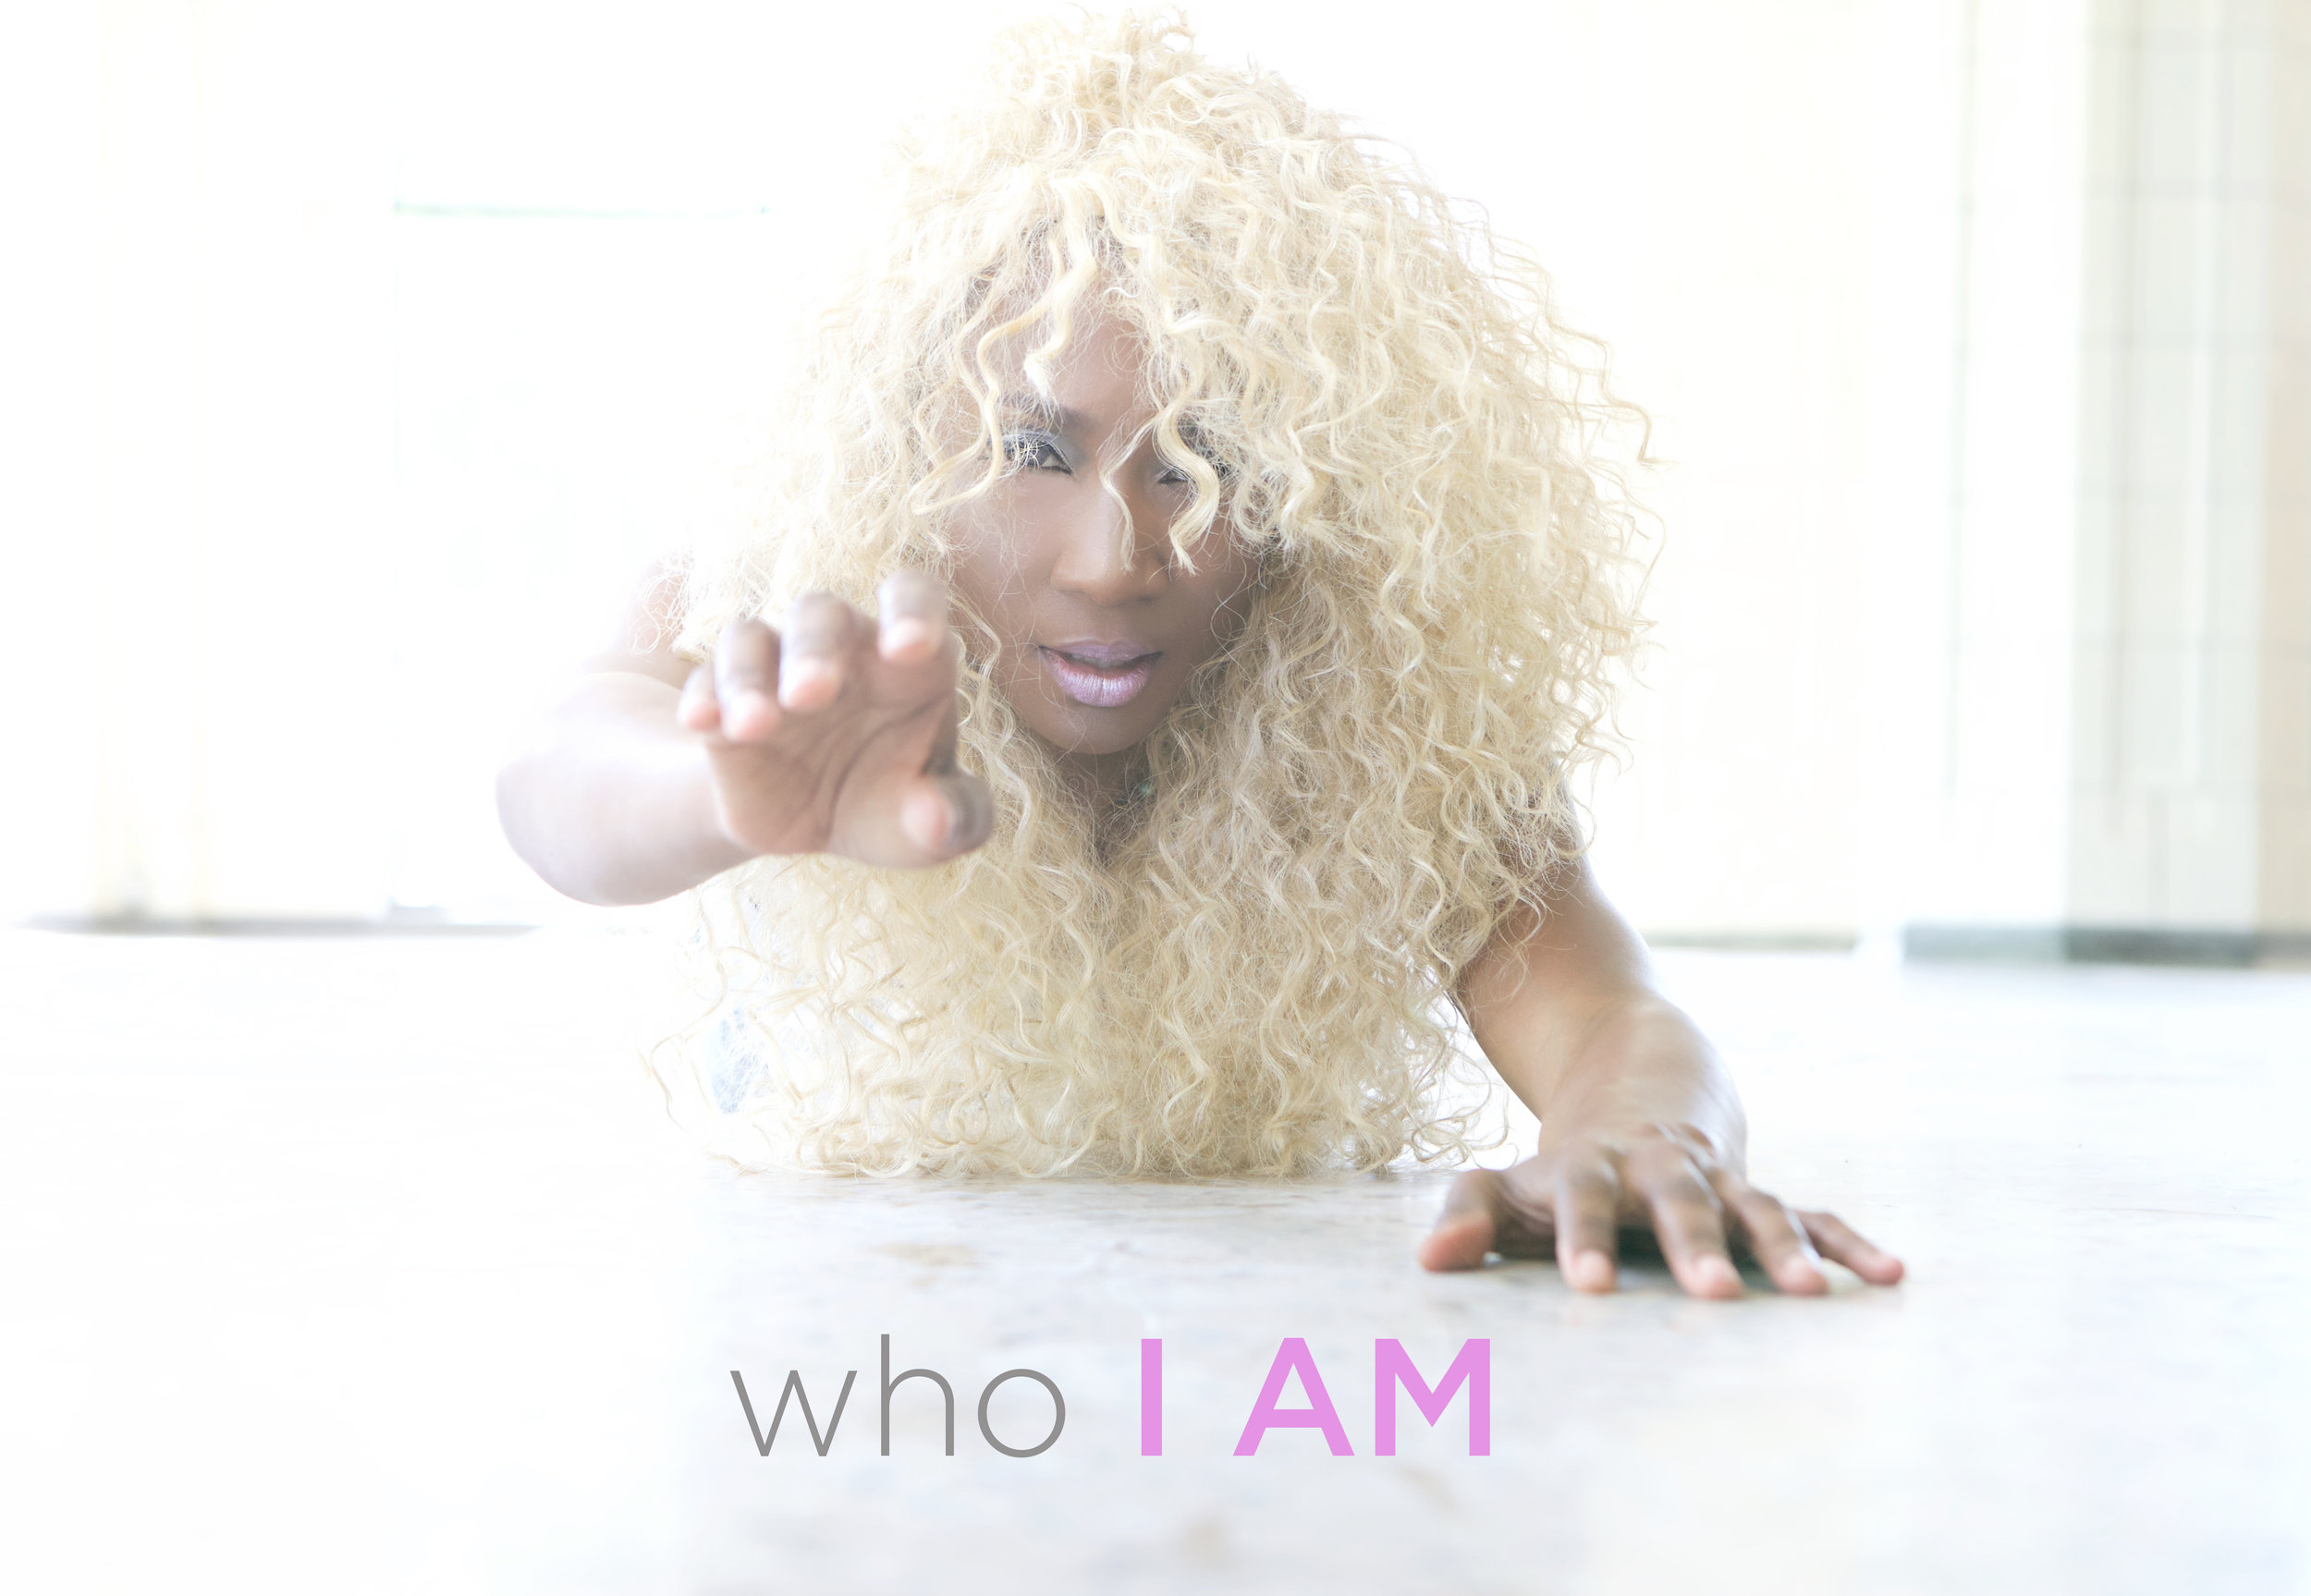 """who I AM (2018) - """"So powerful is unity's light that I can illuminate the whole earth"""" – Baua'u'llahWhen I first started conceptualizing the series """"who I AM"""" in 2009, I dreamt of imagery that was thought provoking and calming at the same time. I was inspired after visiting the Bahá'í temple, and looking up at the ceiling, and seeing how the light filtered through the dome above, and that simple beam of light brought peace to my chaotic mind at that moment. At that silent moment, I was thinking about how lost we sometimes feel in our purpose. Some search their entire lives, some fulfill it at some point and some have always known since birth. """"who I AM"""" is about the journey towards finding my purpose.As I looked back, I realized all my photography series, lead up to this one. I started out with """"Life and Death"""" a series depicting sins and virtues, then a collection of mini series within """"Life: Untainted"""" that confronted my nightmares and awakened my dreams, """"Catalyst"""", a series about the Gandhi's social sins, """"Love your bones"""", a journey to self love and """"Freight"""", a collection of photographs reflecting on finding stillness in social chaos. Each series taught me something significant. I learned that no matter how deep you fall into darkness, your inner mirror, somehow cleaned, by each person you come across or in my case, each person I photographed. Each person/model helped me clean my inner mirror in order to reflect that light, to accept my purpose and hopefully spread the message that, we all have that mirror, and it is up to us let that light reflect and share that light with others. You see, we are predestined to share harmony and fellowship, love and solidarity, compassion and unity. Being unanimity in complete dignity and freedom with all on earth is """"who I AM"""".To view this series, click here.To purchase works, please contact me, some of the works are represented by ACS Gallery on Artsy.net."""